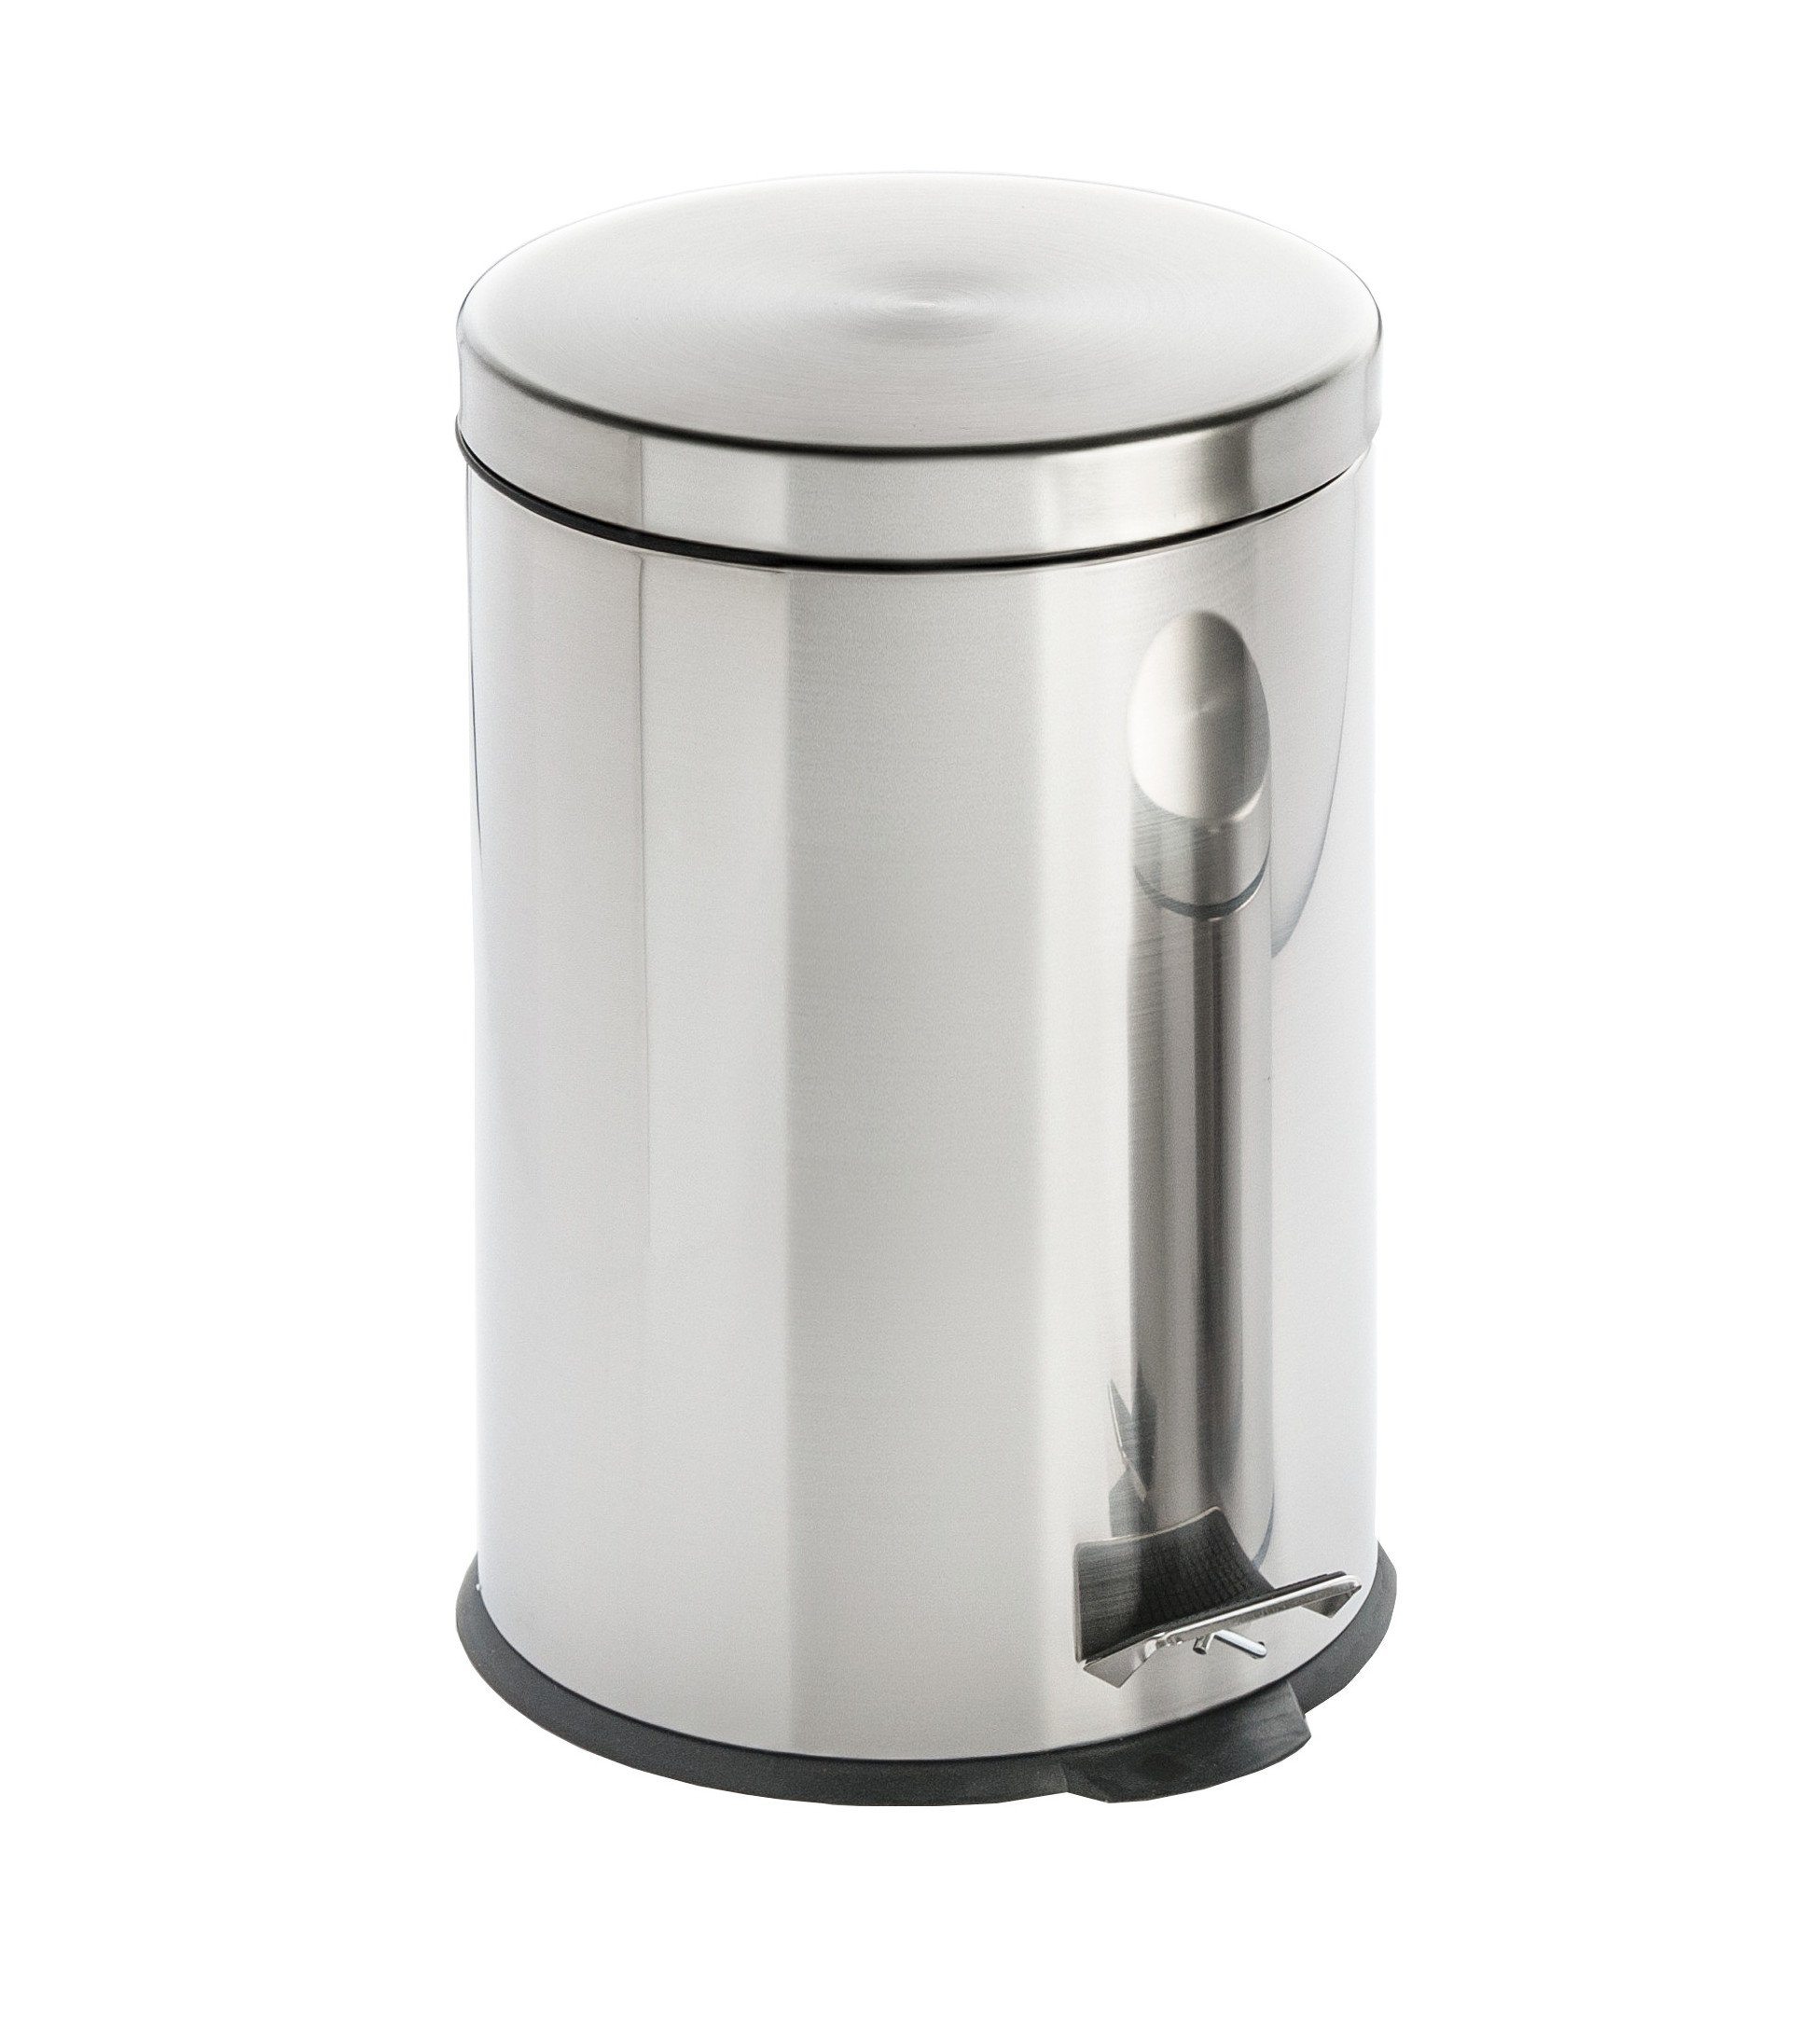 Cooks on Fire Trash Bin Stainless Steel 12L/3 Gallon, , Silver